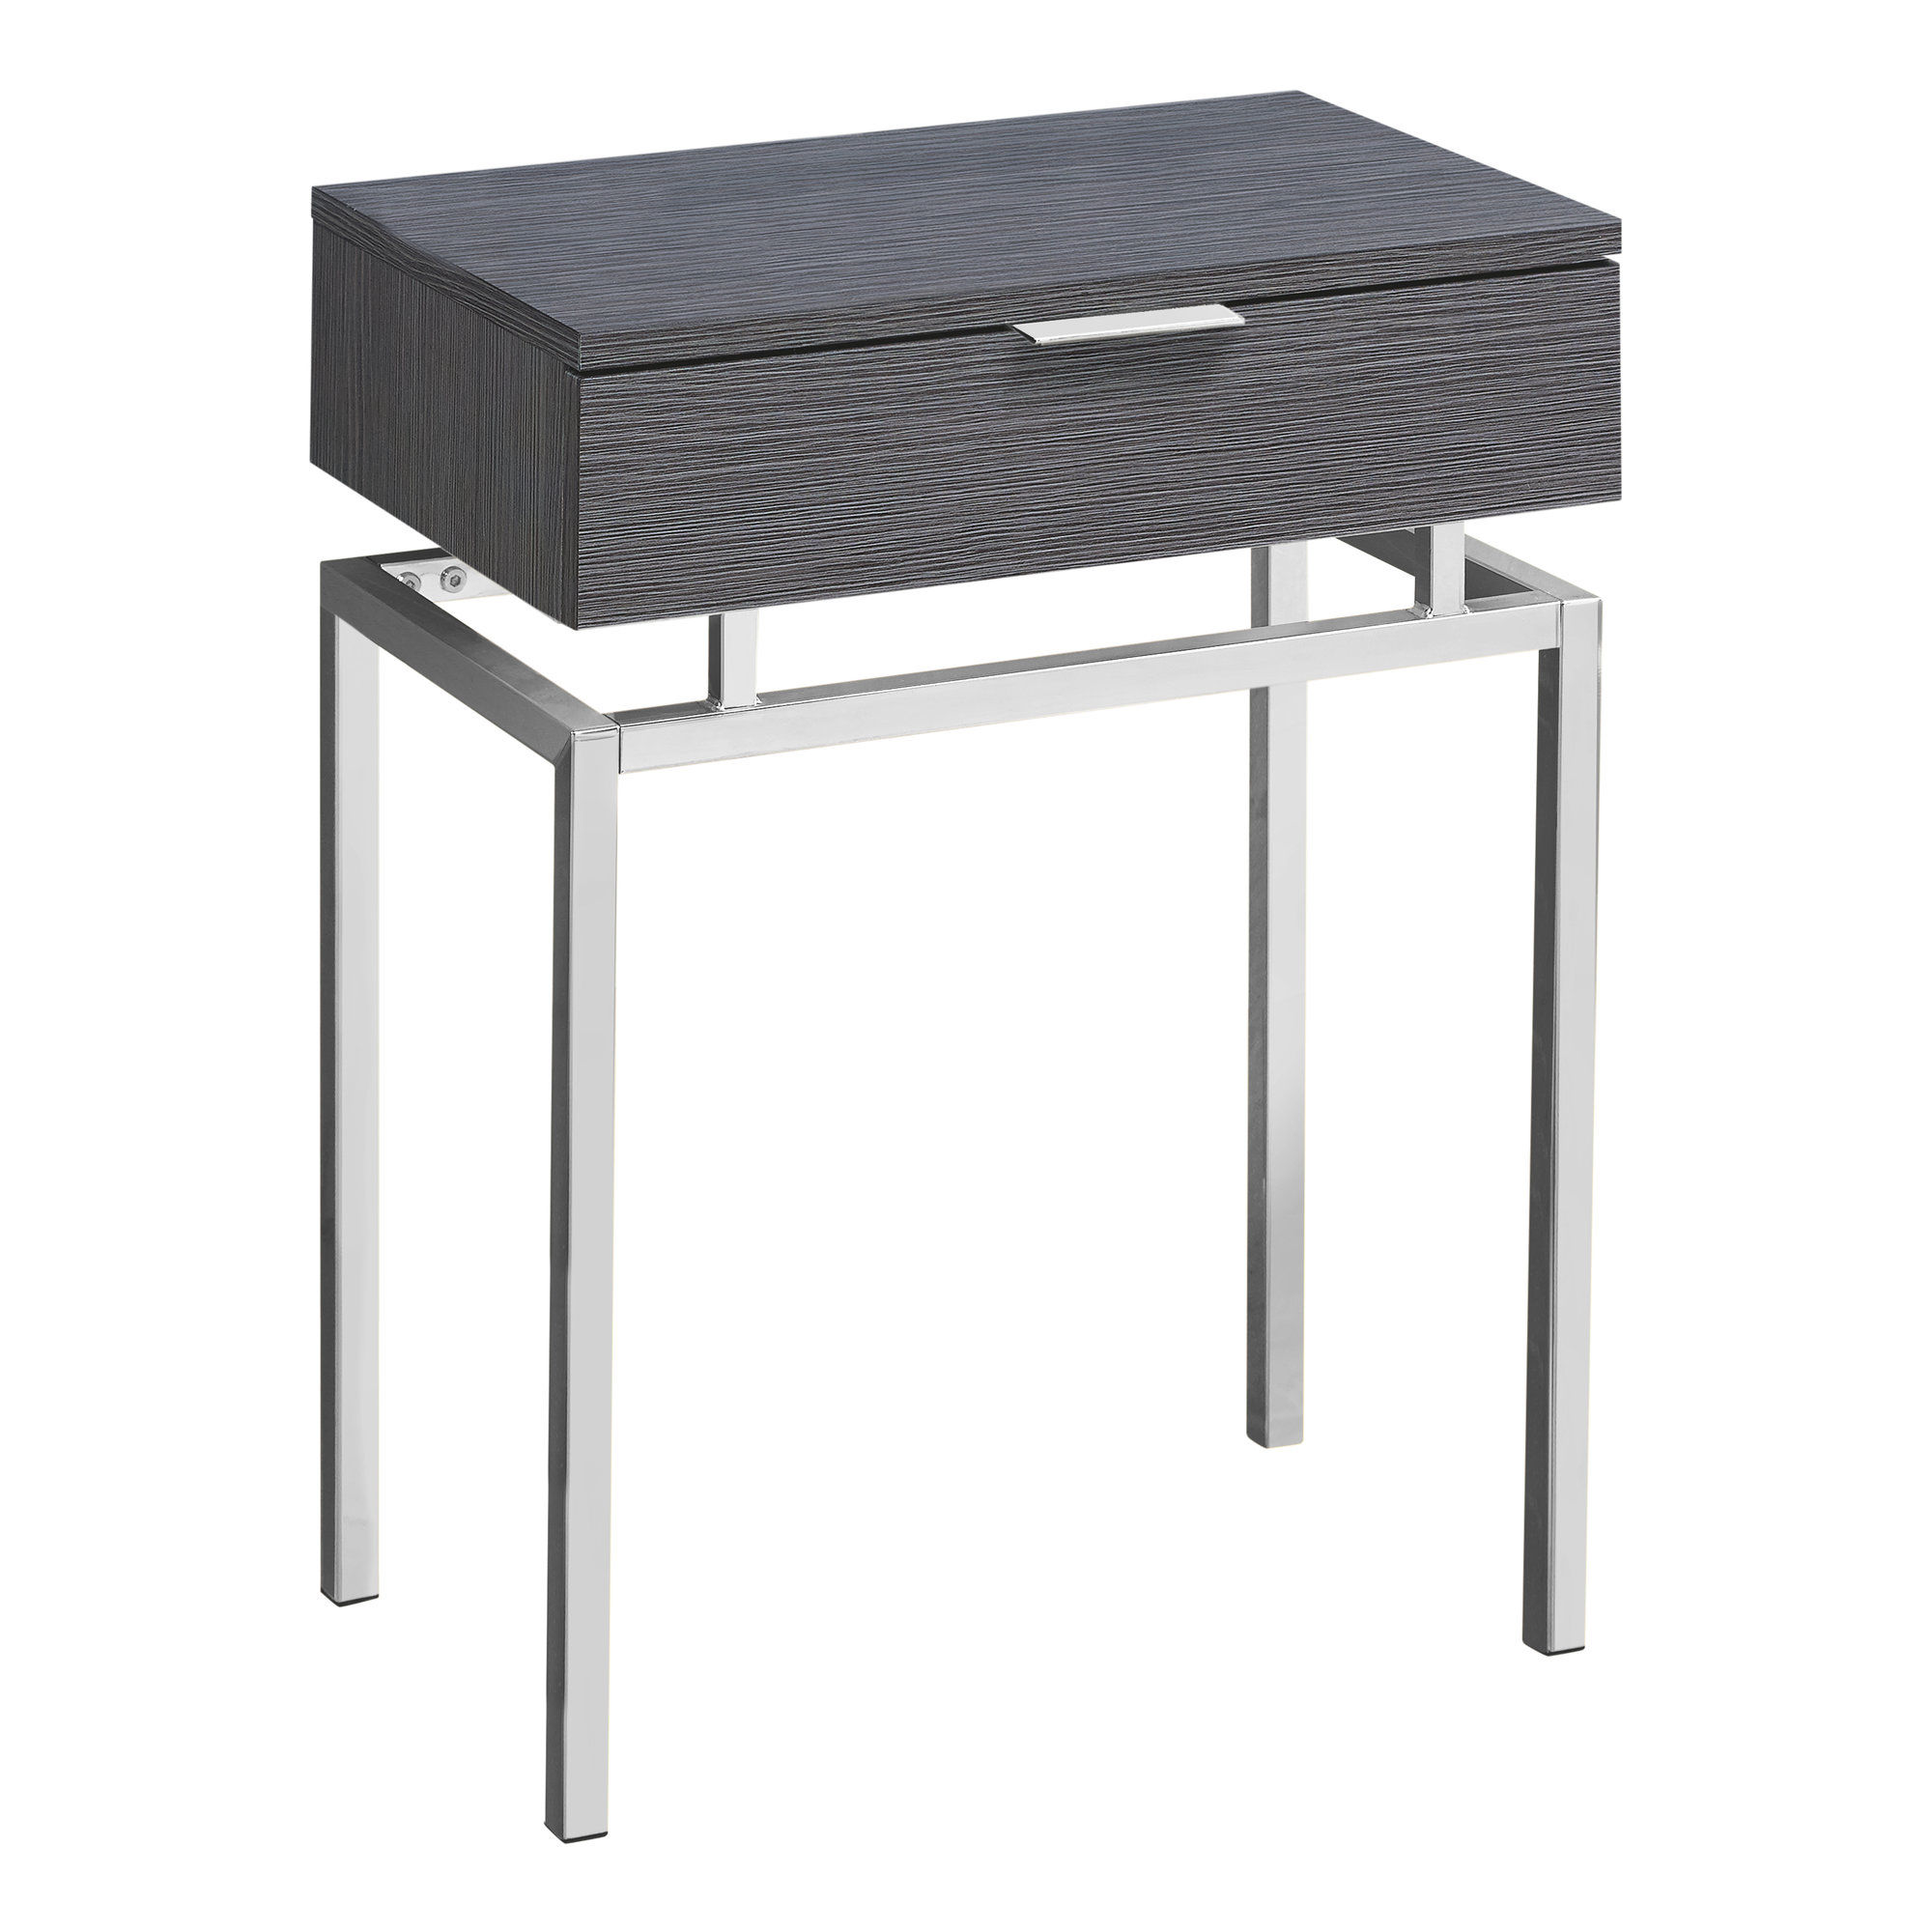 monarch specialties grey mdf inch accent table the classy home mnc bar height and chairs high back dining small retro coffee drop leaf normande lighting led desk lamp pier one